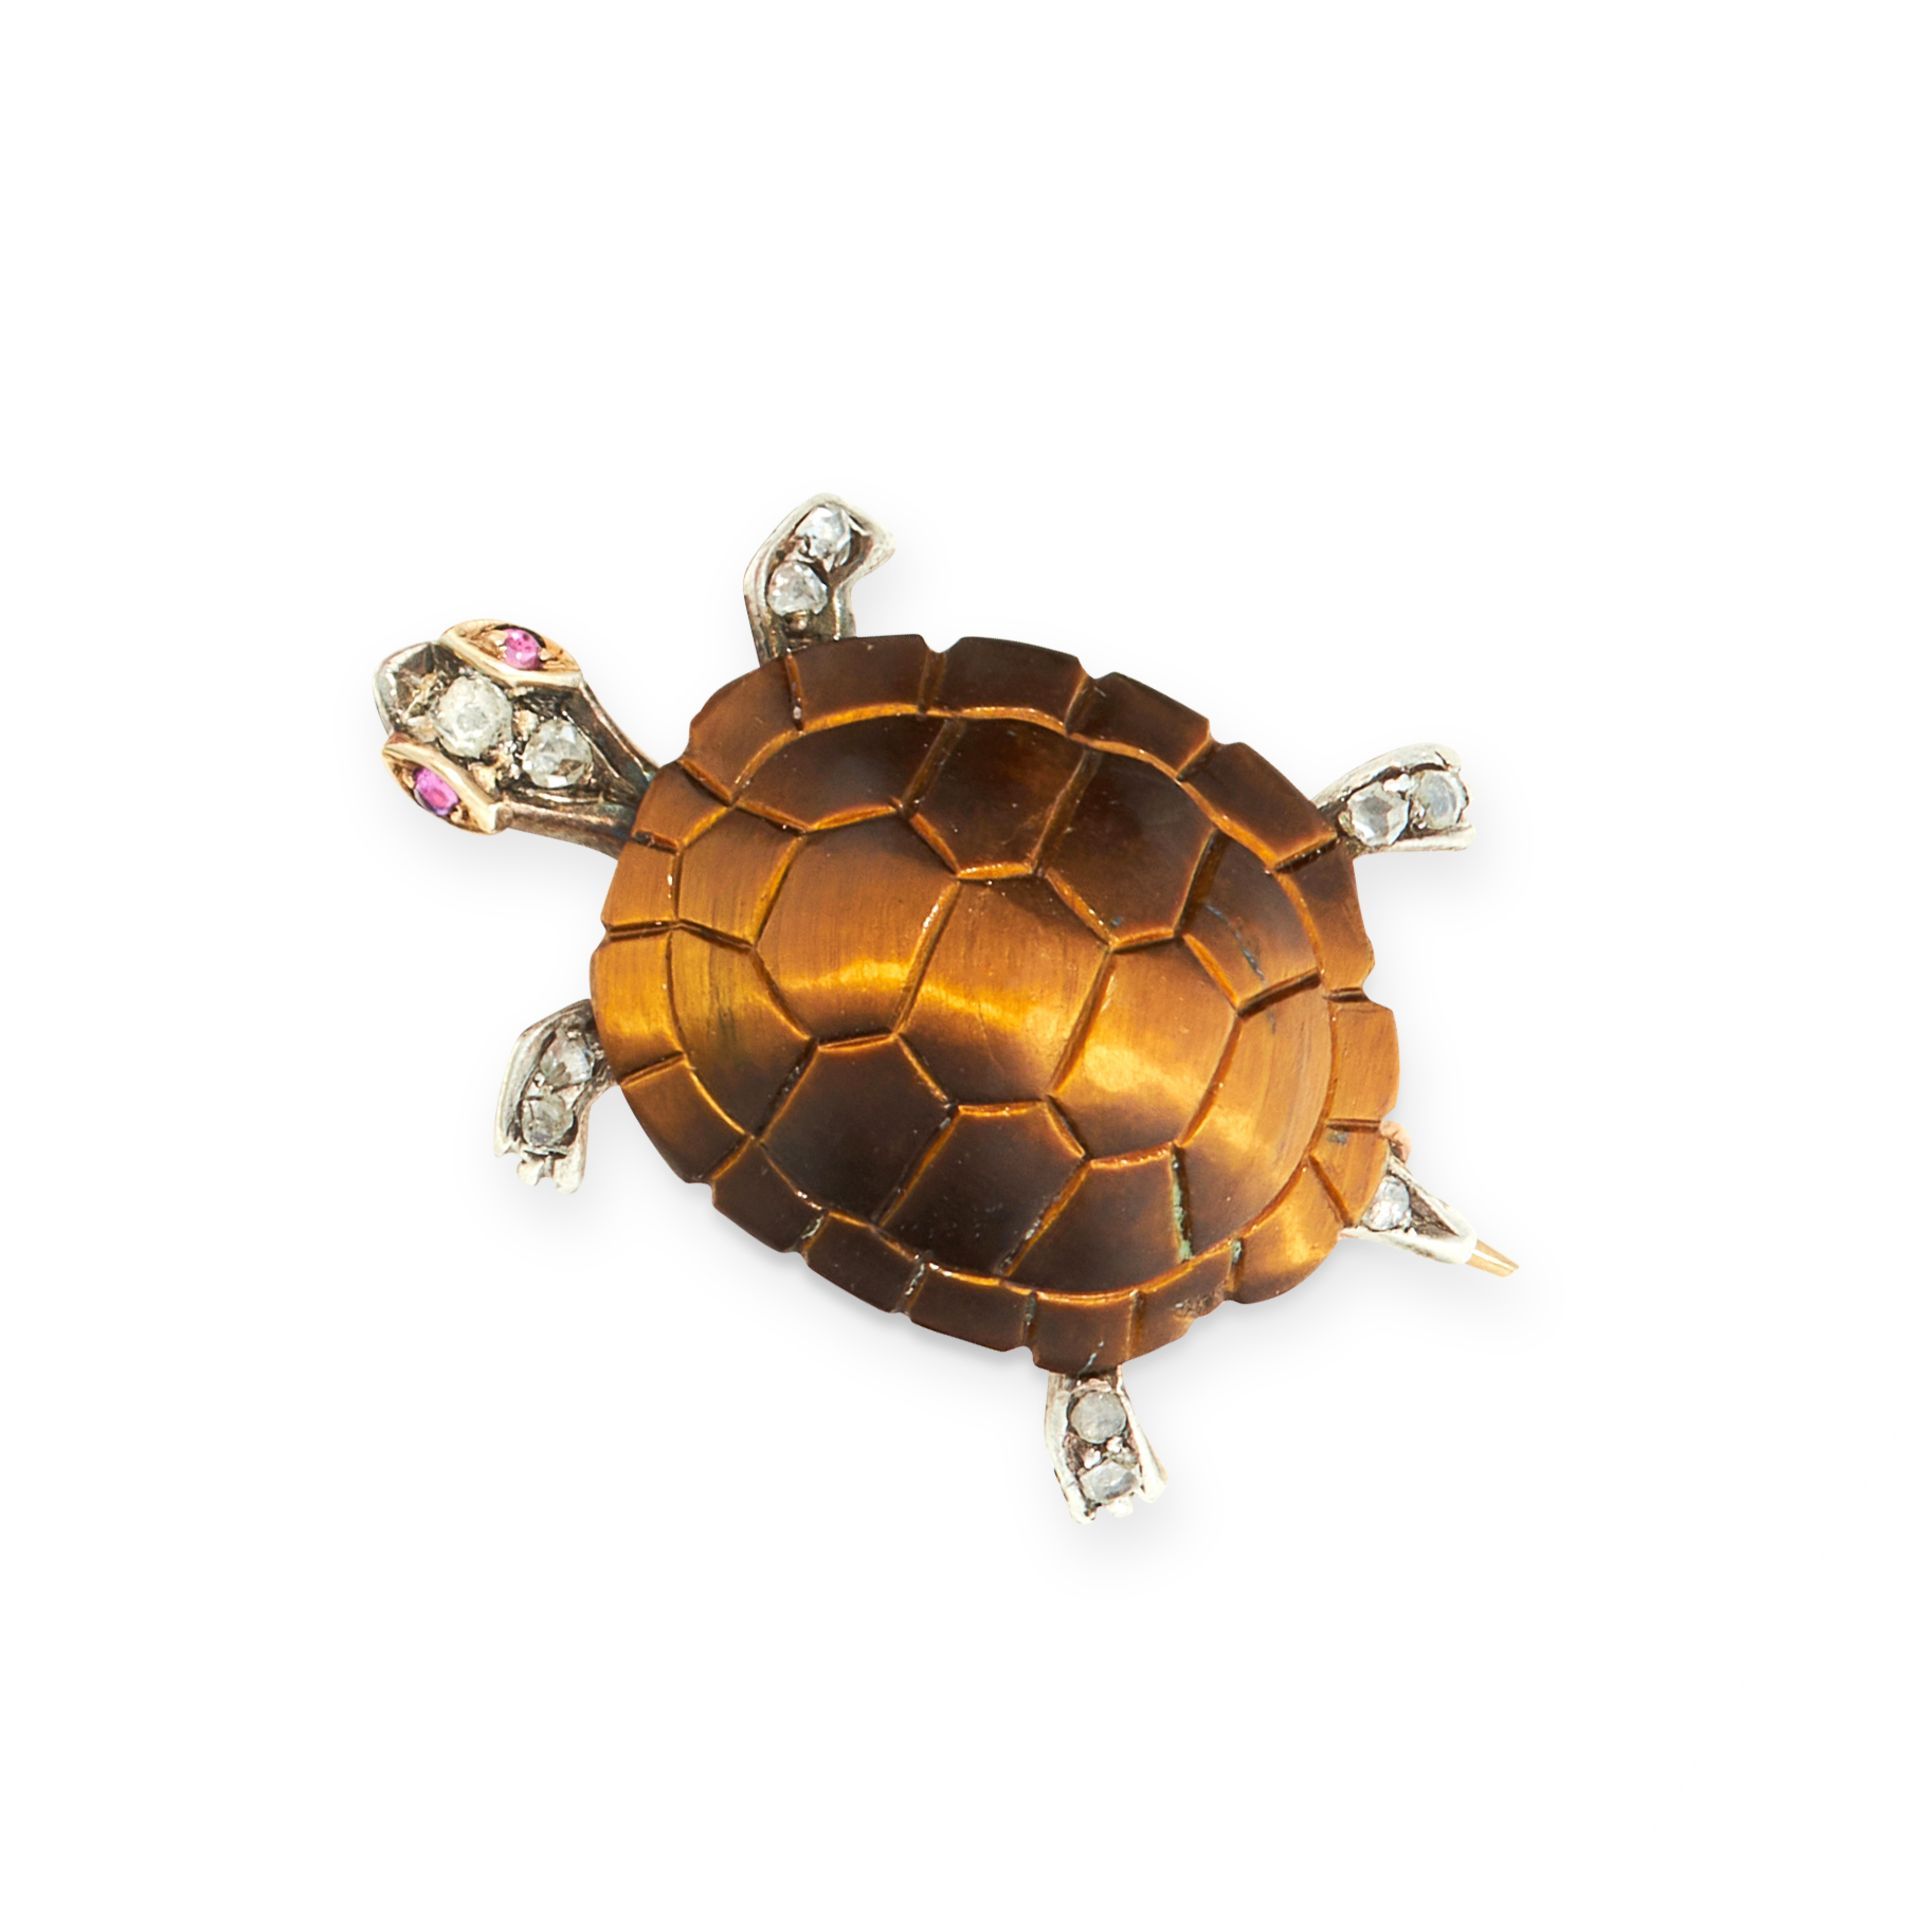 A TIGER'S EYE, RUBY AND DIAMOND TURTLE BROOCH in yellow gold, the shell formed of a carved piece